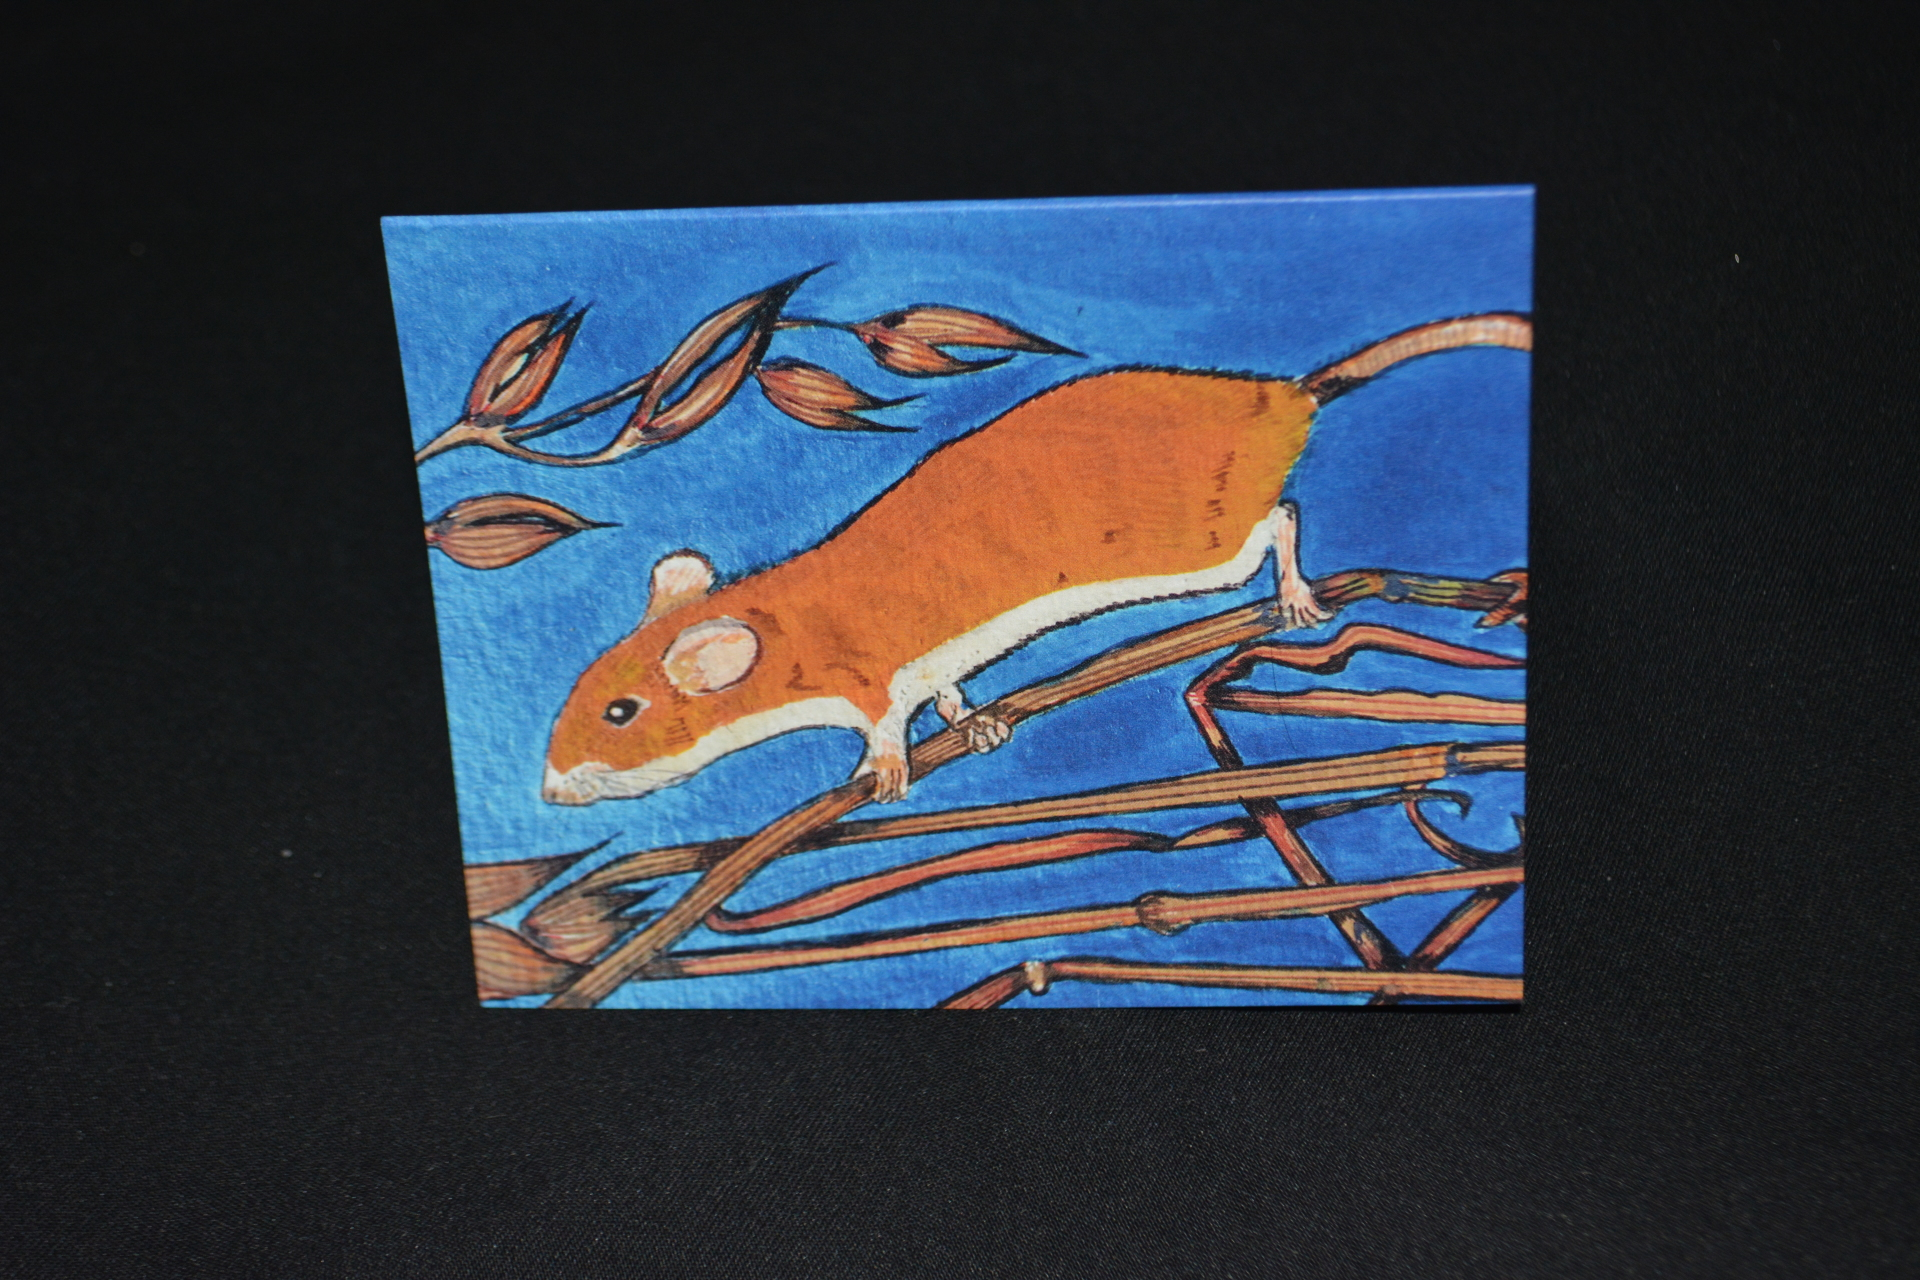 Field mouse (metallic paint)